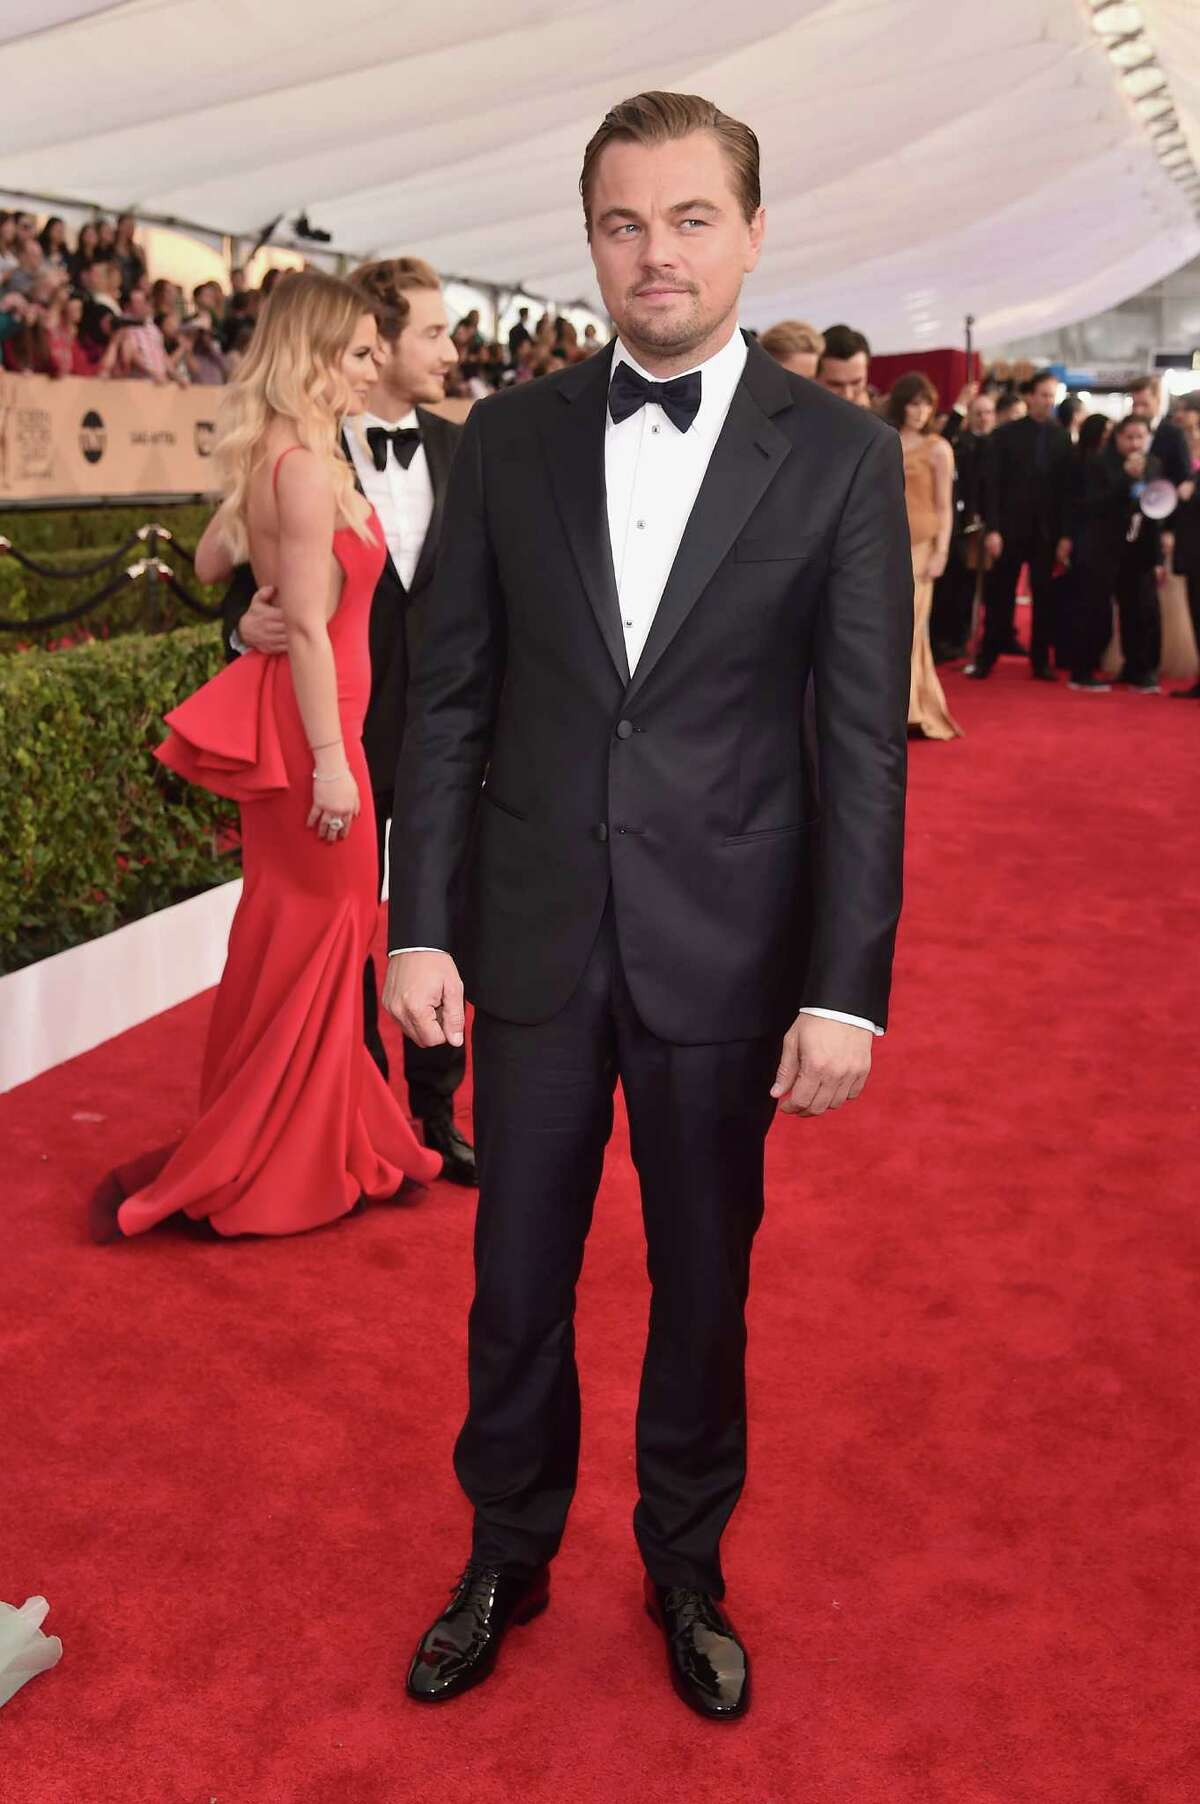 Actor Leonardo DiCaprio attends the 22nd annual Screen Actors Guild Awards at the Shrine Auditorium in Los Angeles on Jan. 30, 2016. DiCaprio won his second major award for